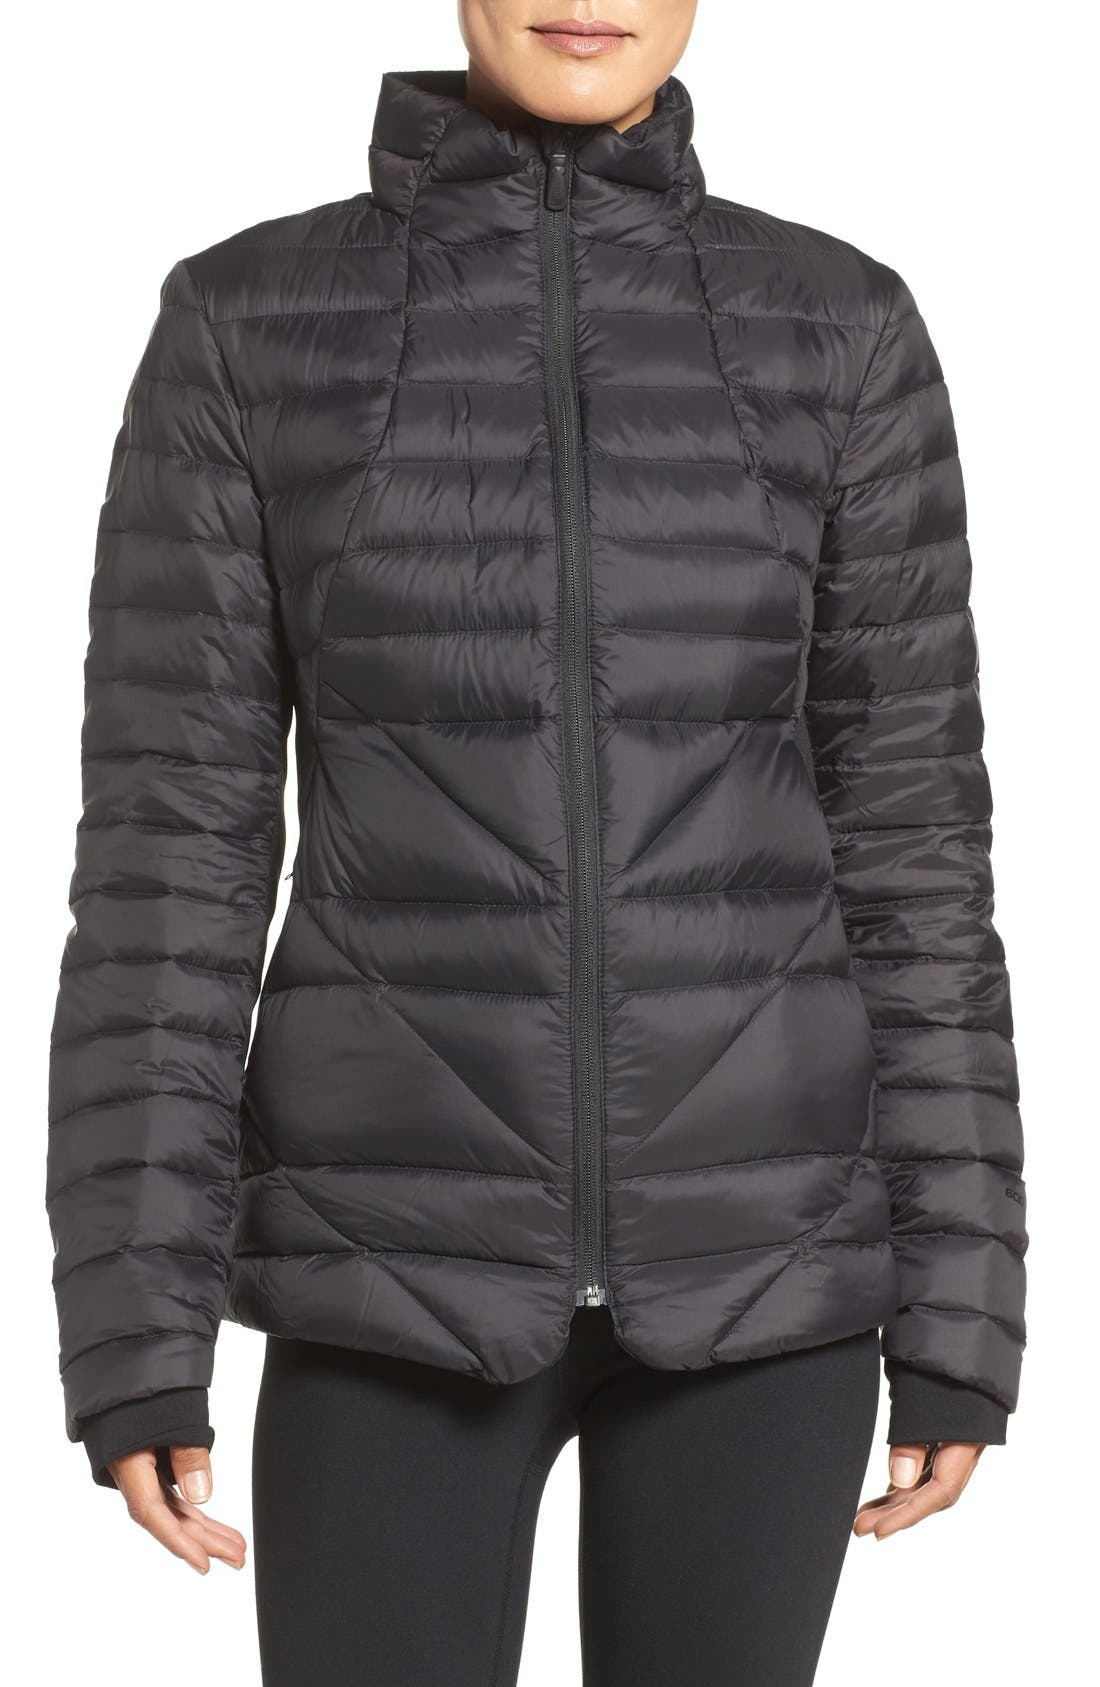 THE NORTH FACE,                             Lucia Hybrid Down Jacket,                             Main thumbnail 1, color,                             001